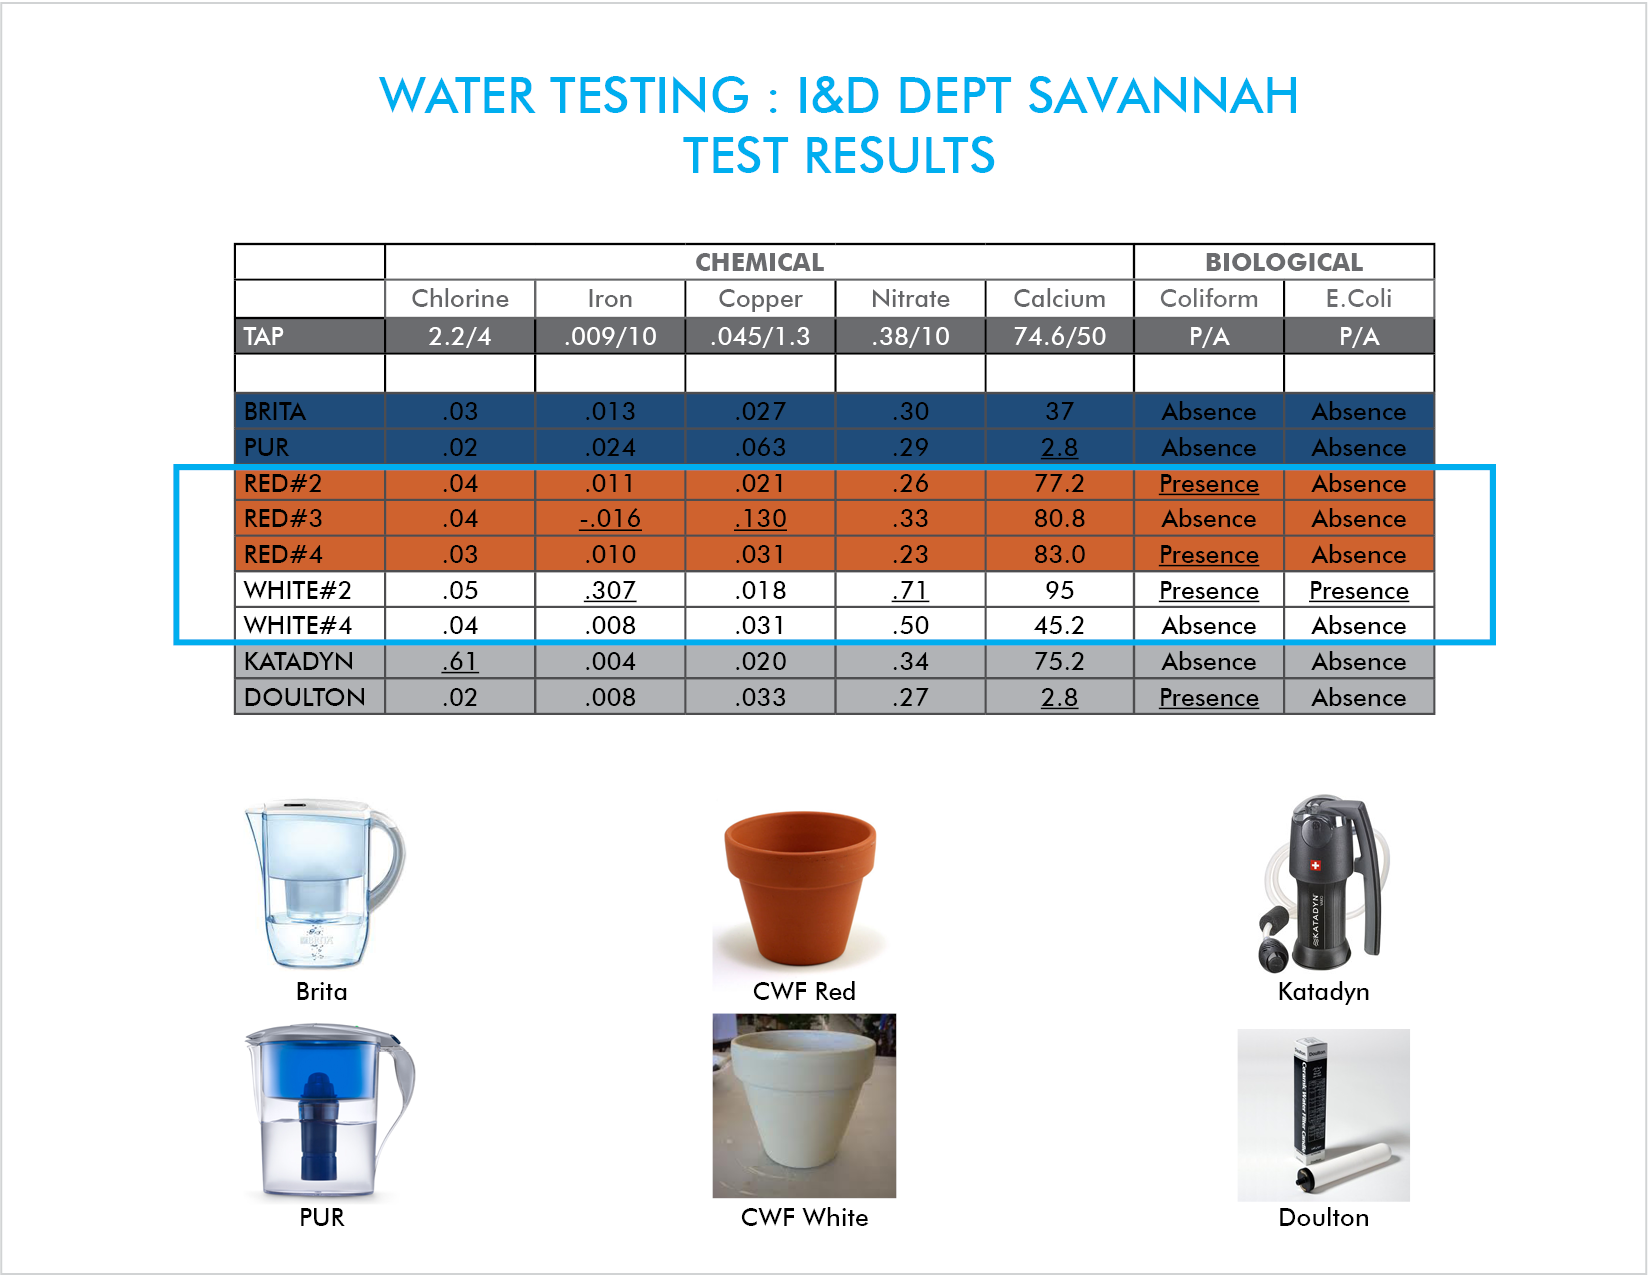 10 water samples from commercial Carbon & Ceramic water filters were compared with The Red & White Clay Test pieces for Chlorine, Iron, Copper, Nitrates & Calcium, Red Water filters performed comparably or better than the industrial market filters in removal of Chemical contaminants.